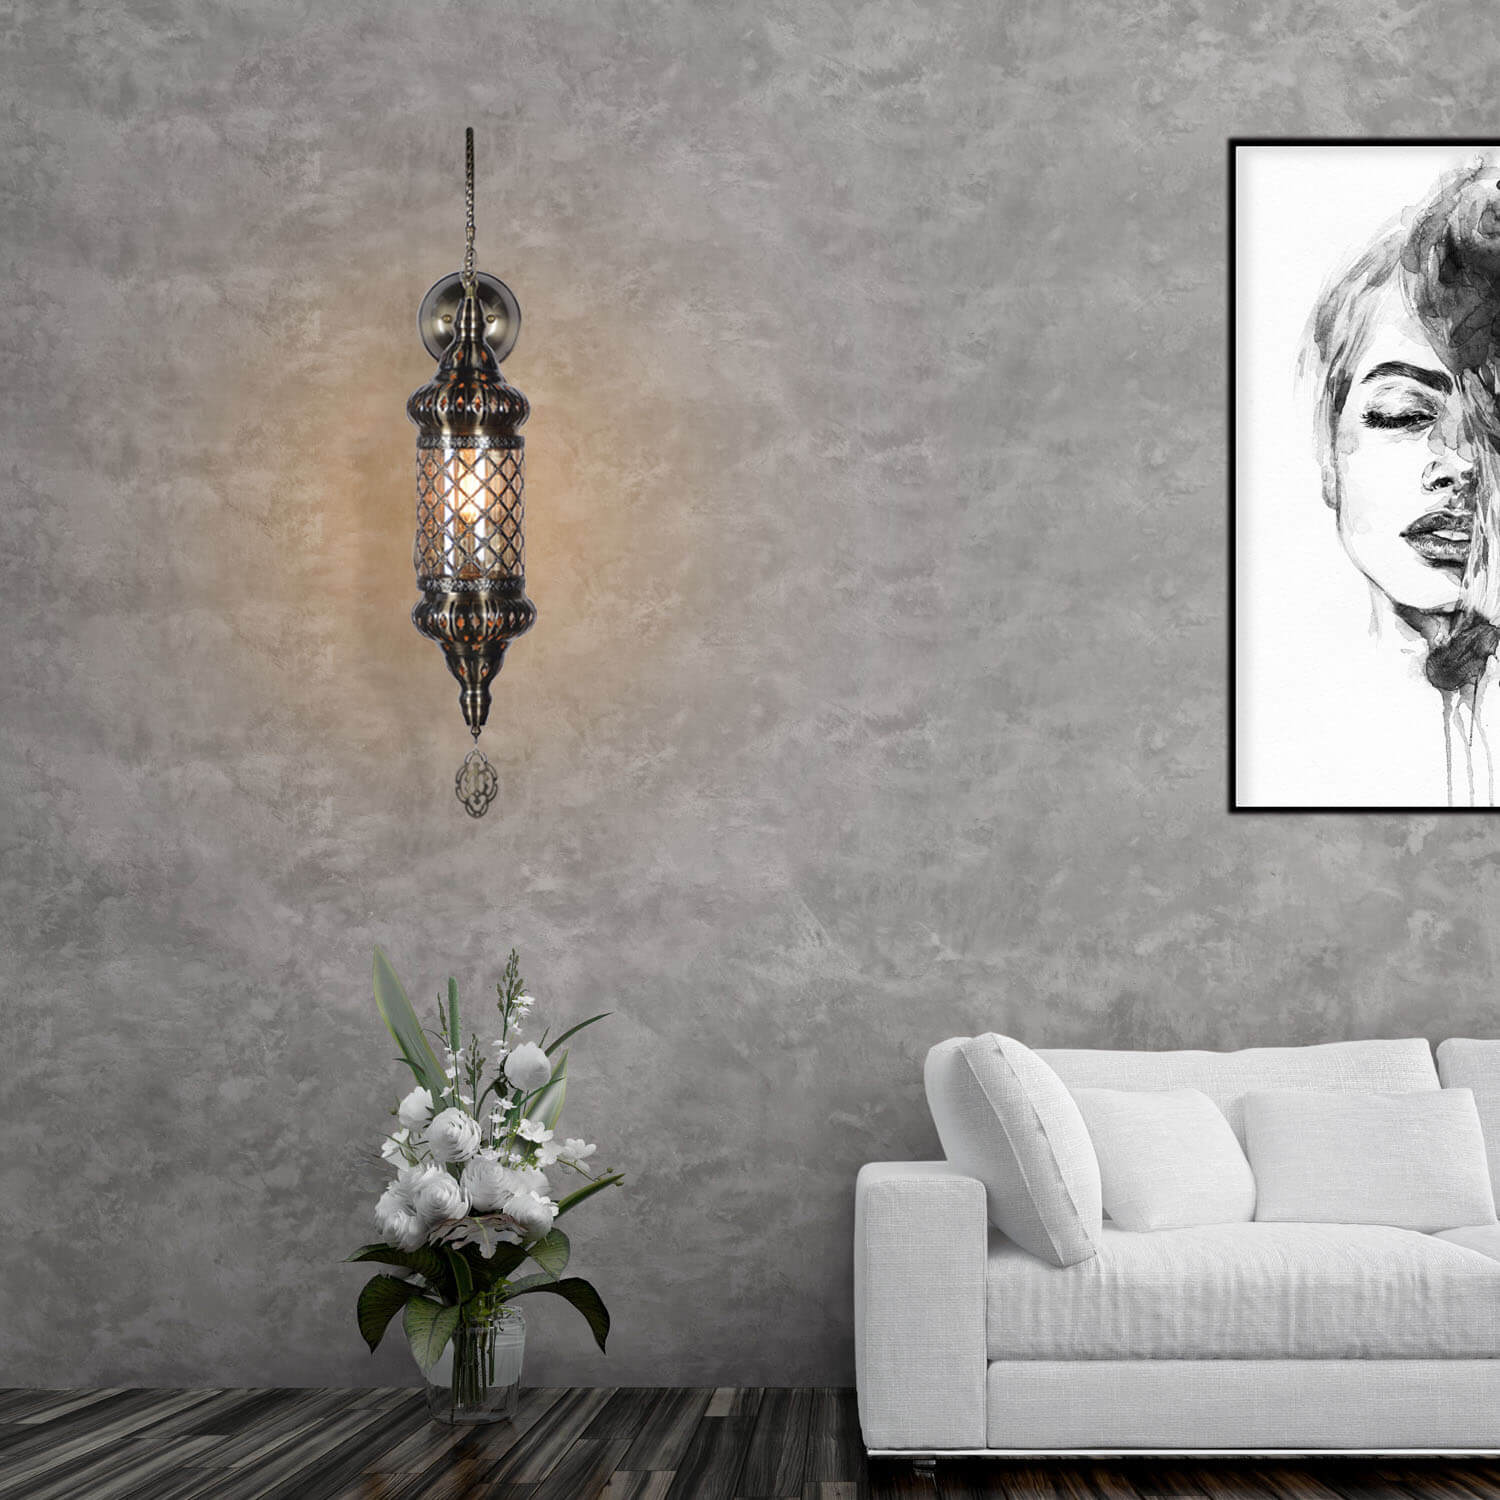 moroccan wall light lifestyle 2